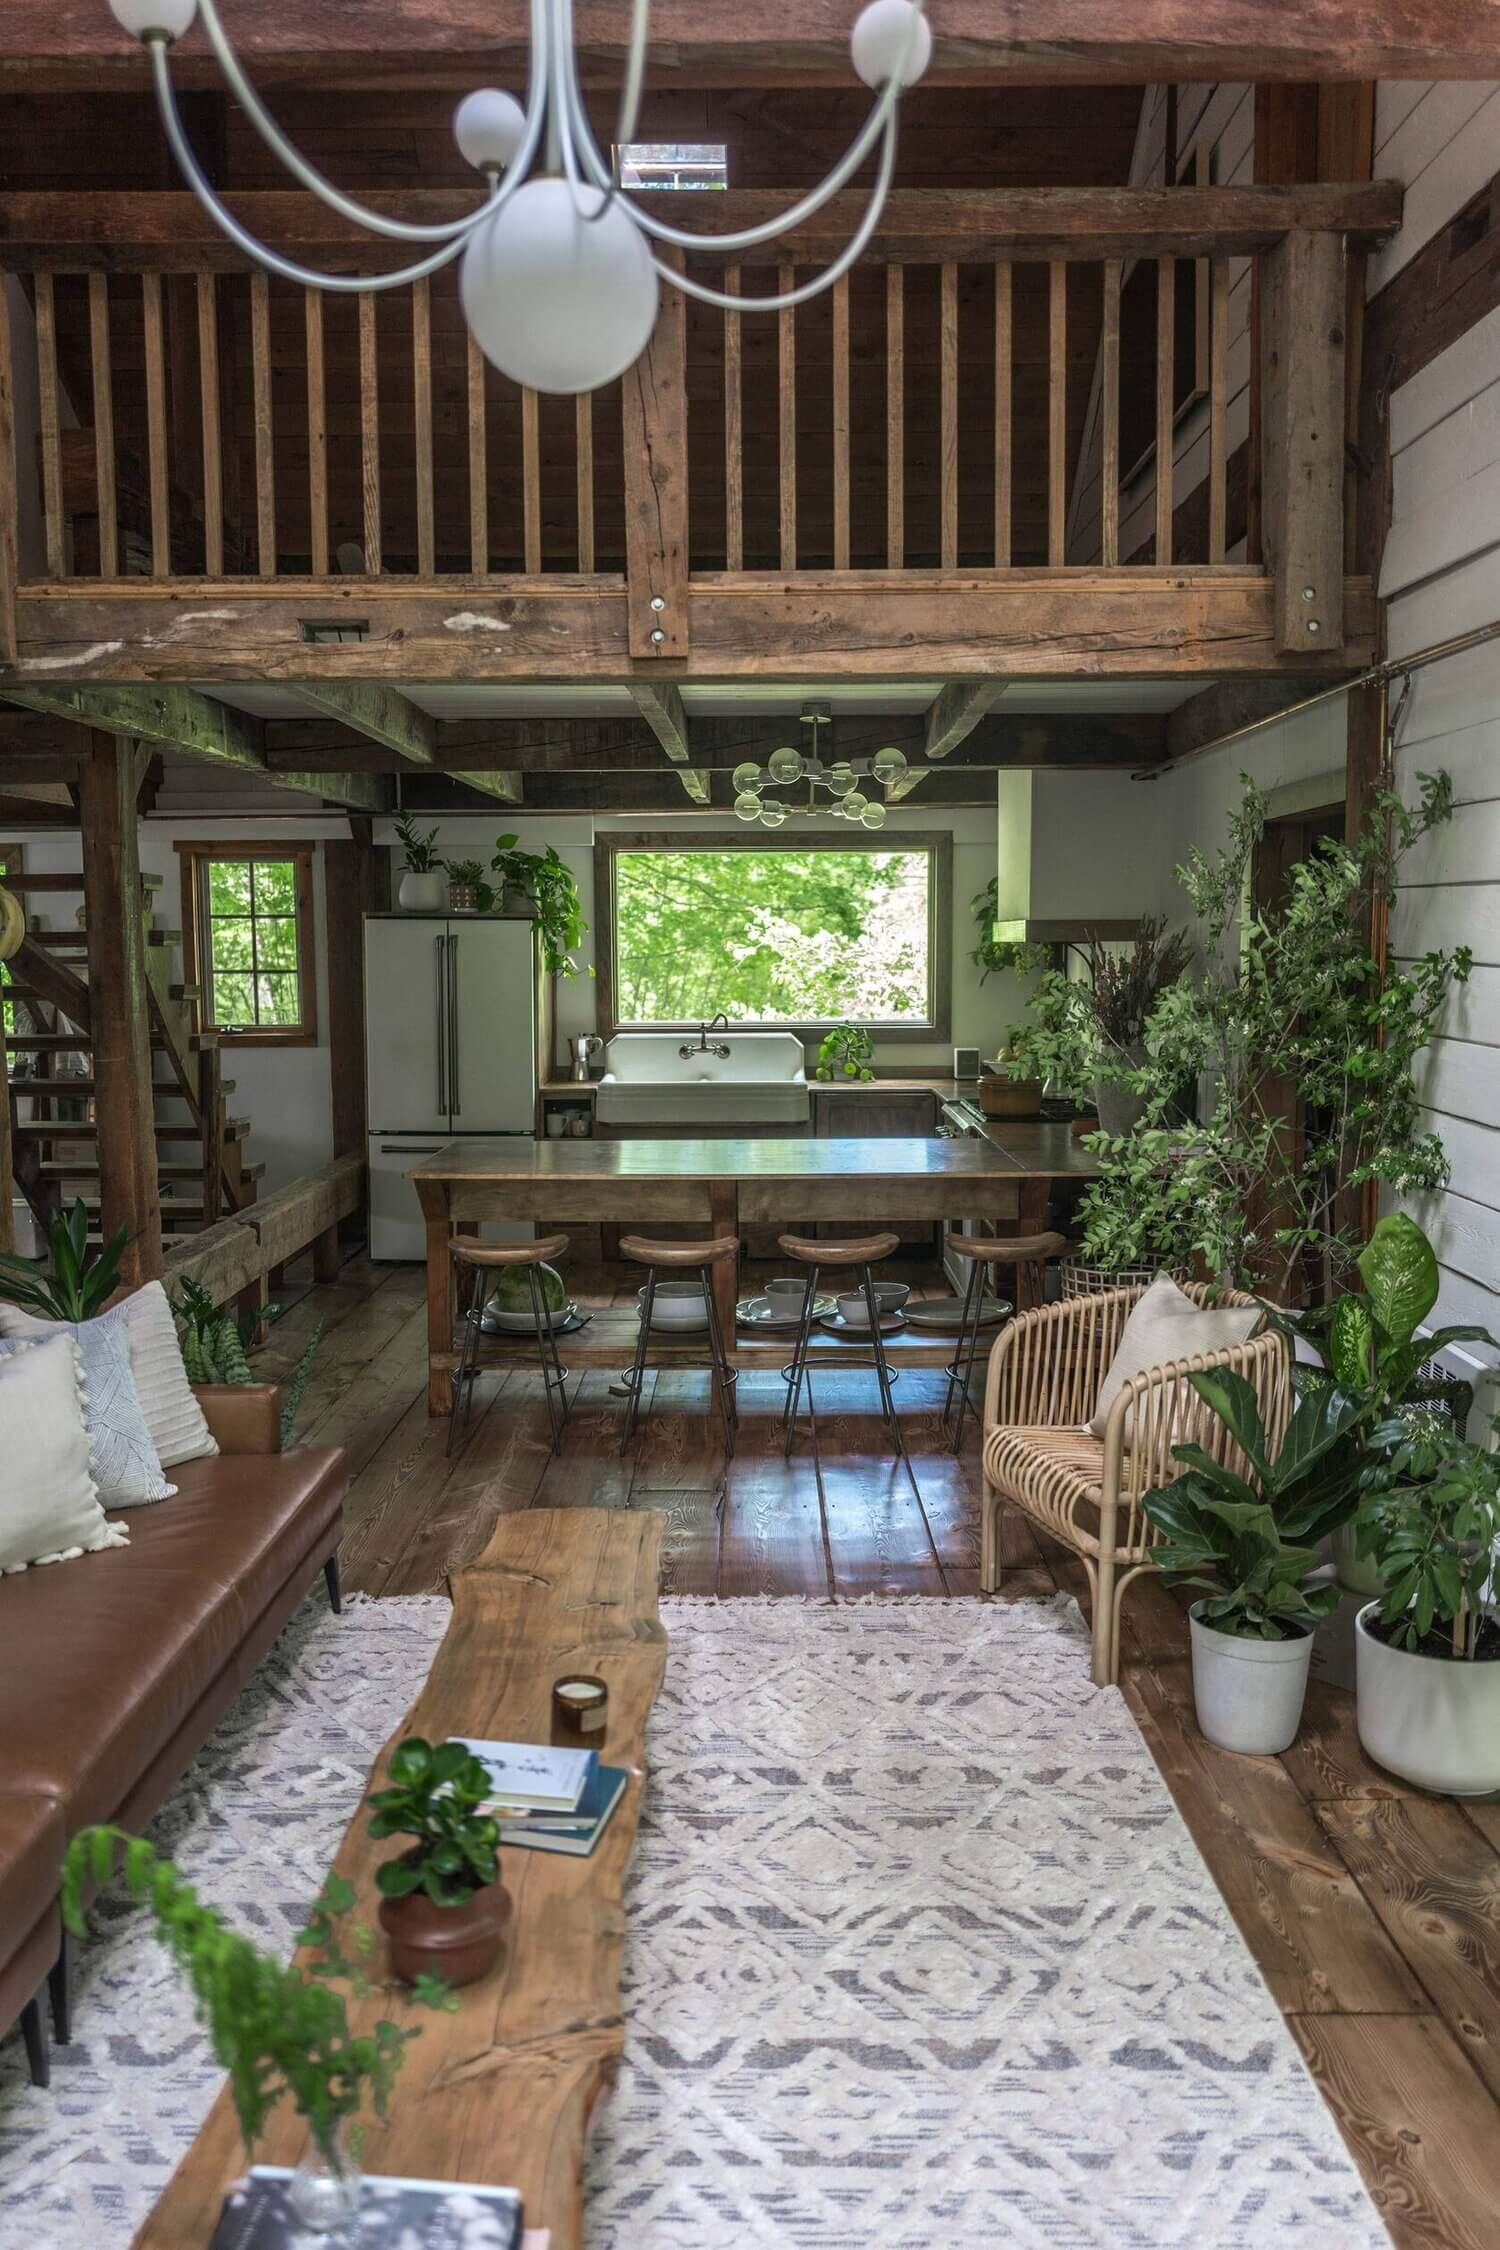 The Hunter Barnhouse: A Stylish Slow Living Airbnb Surrounded by Nature